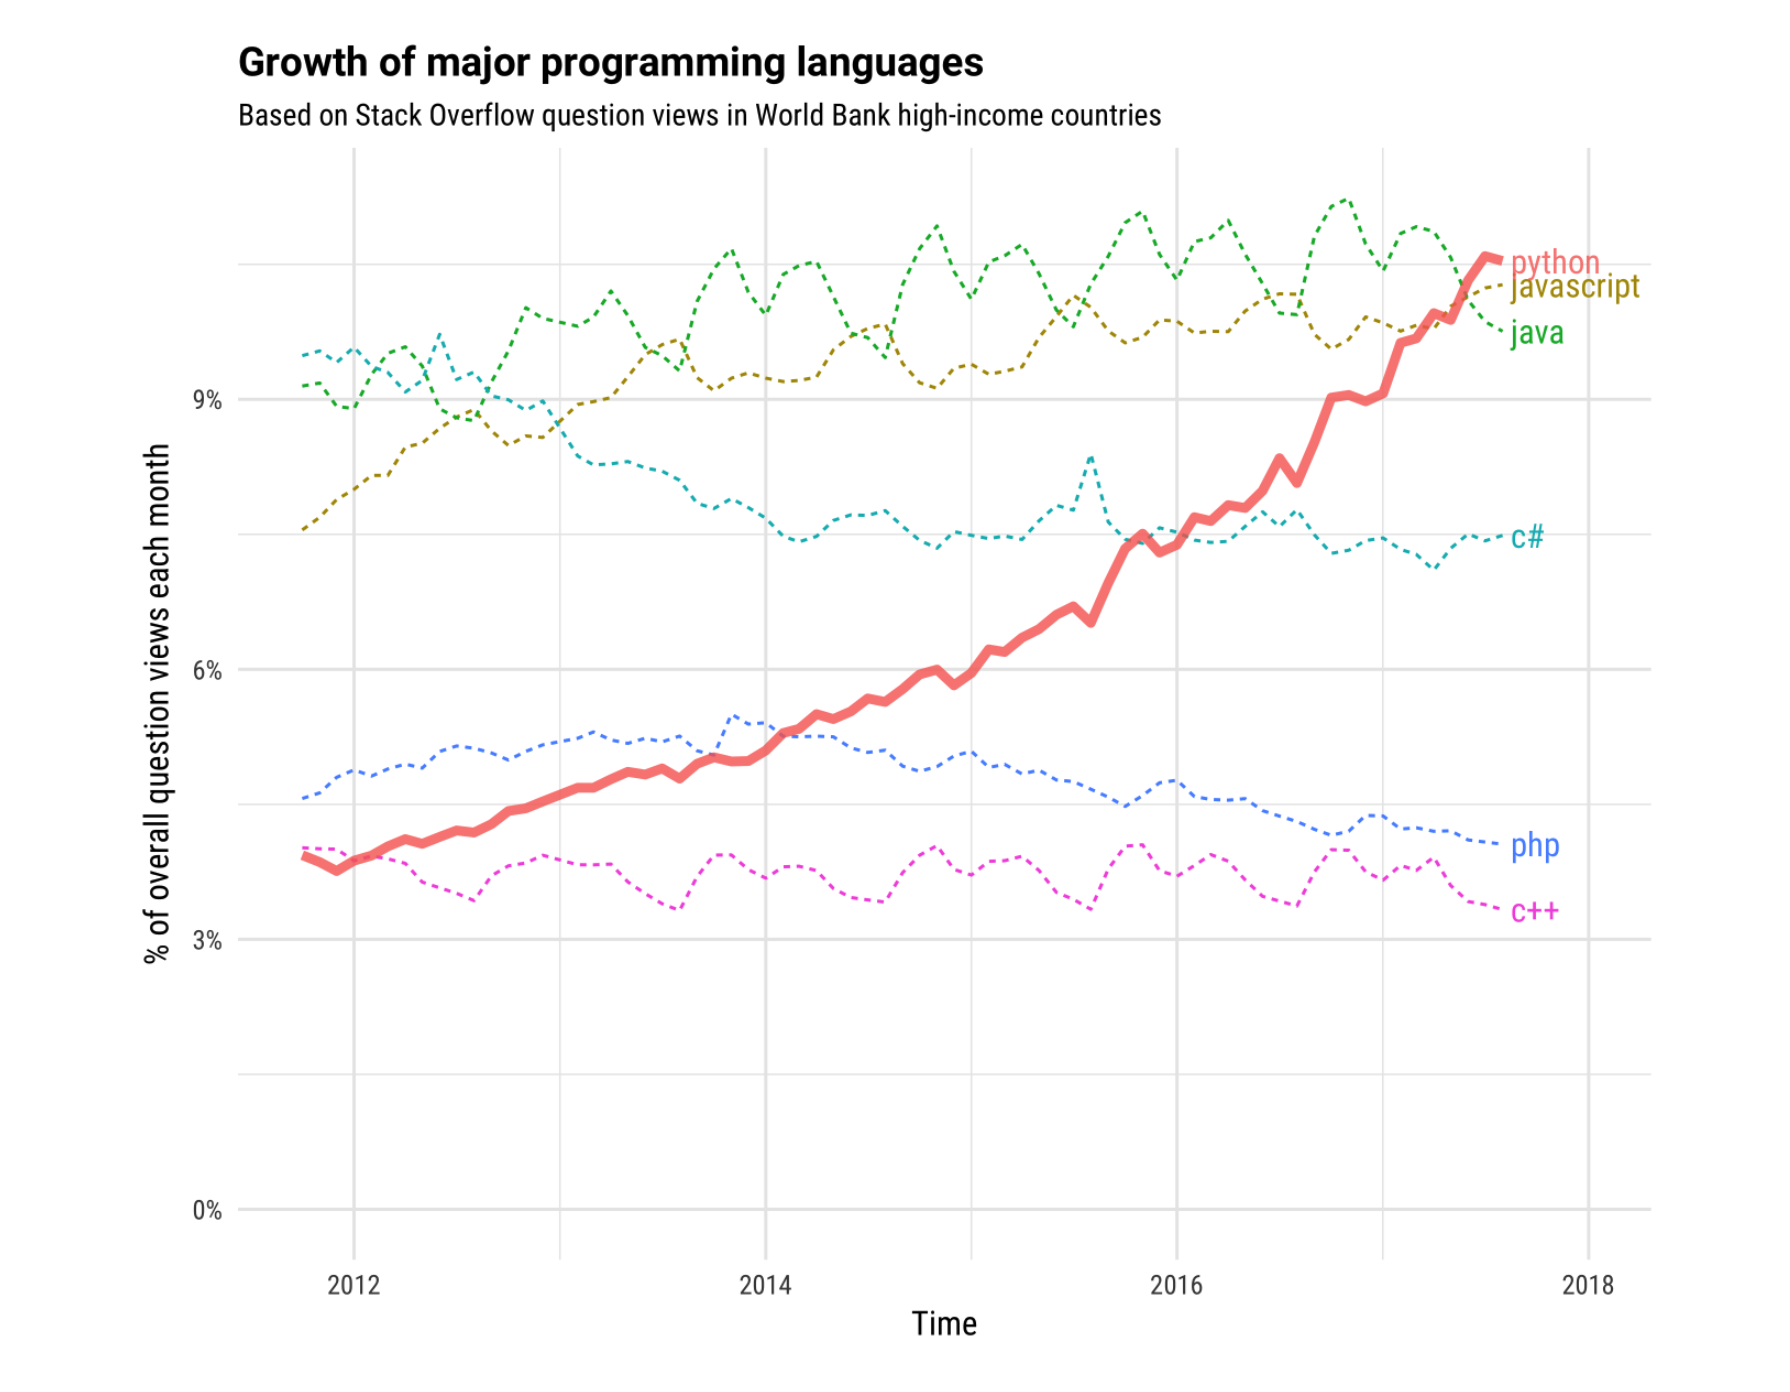 https://stackoverflow.blog/2017/09/06/incredible-growth-python/